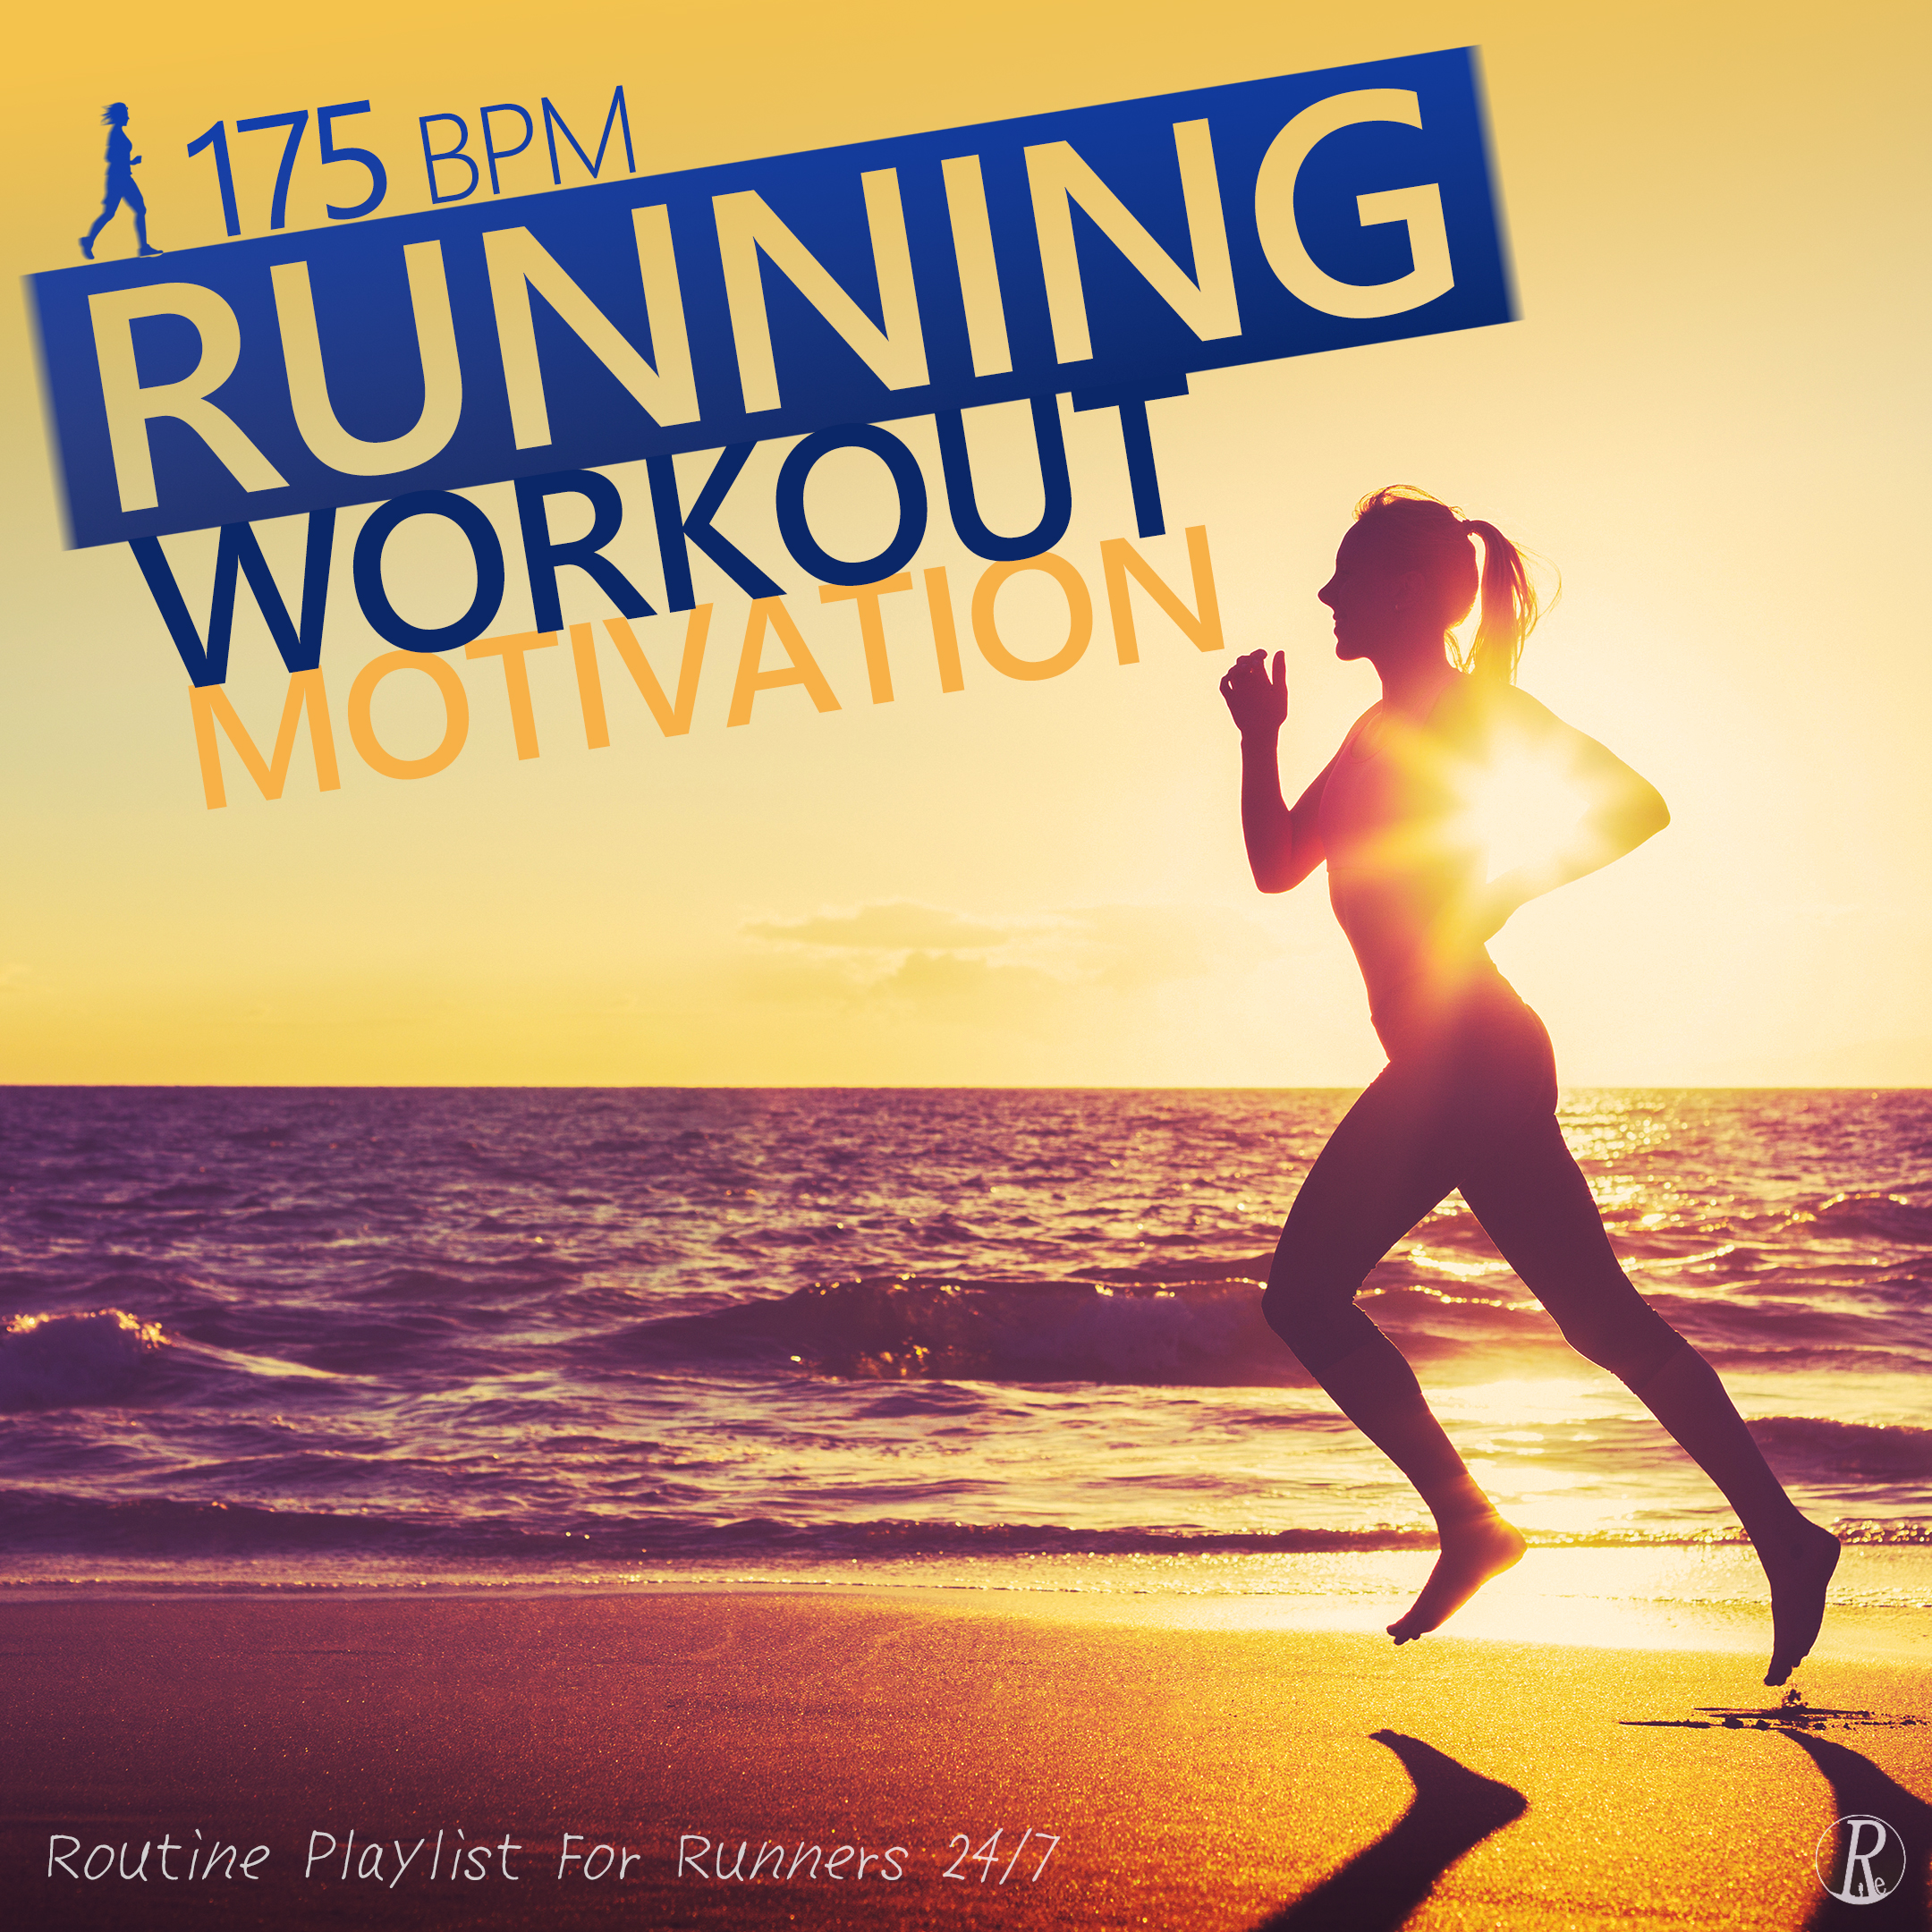 Running Workout Lab - Running Workout Motivation 175 BPM